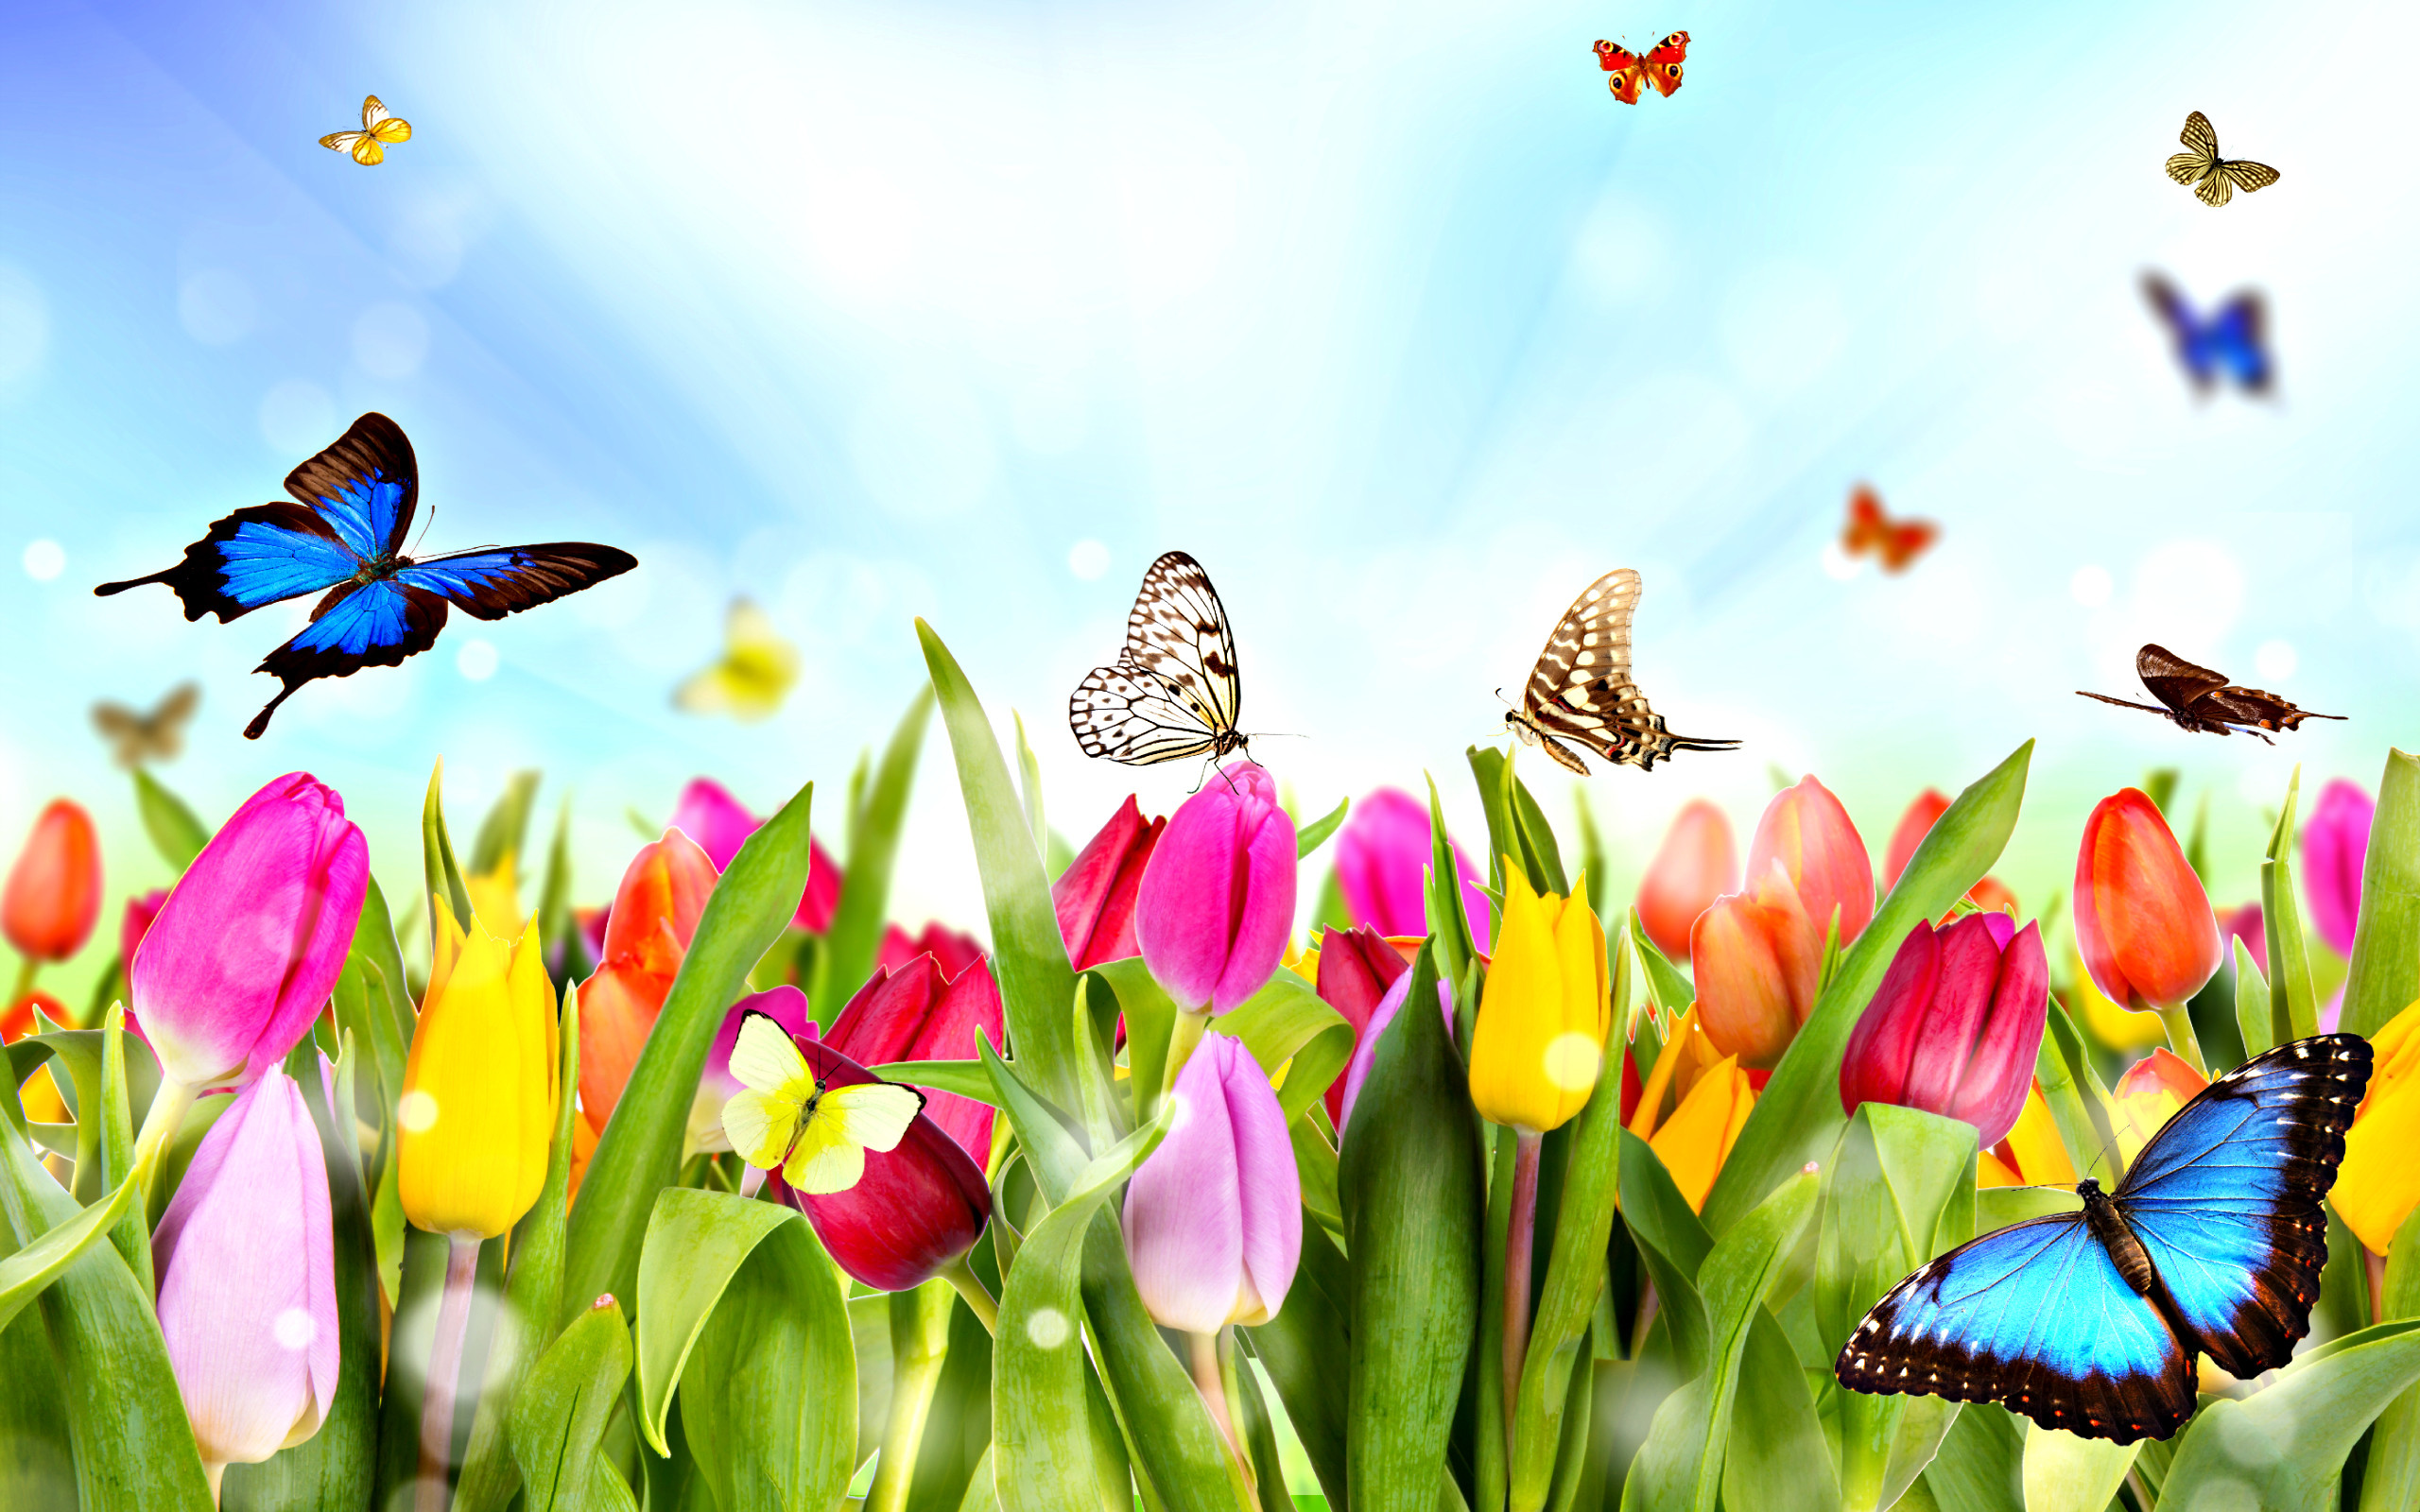 2560x1600 download hd wallpaper of spring flowers